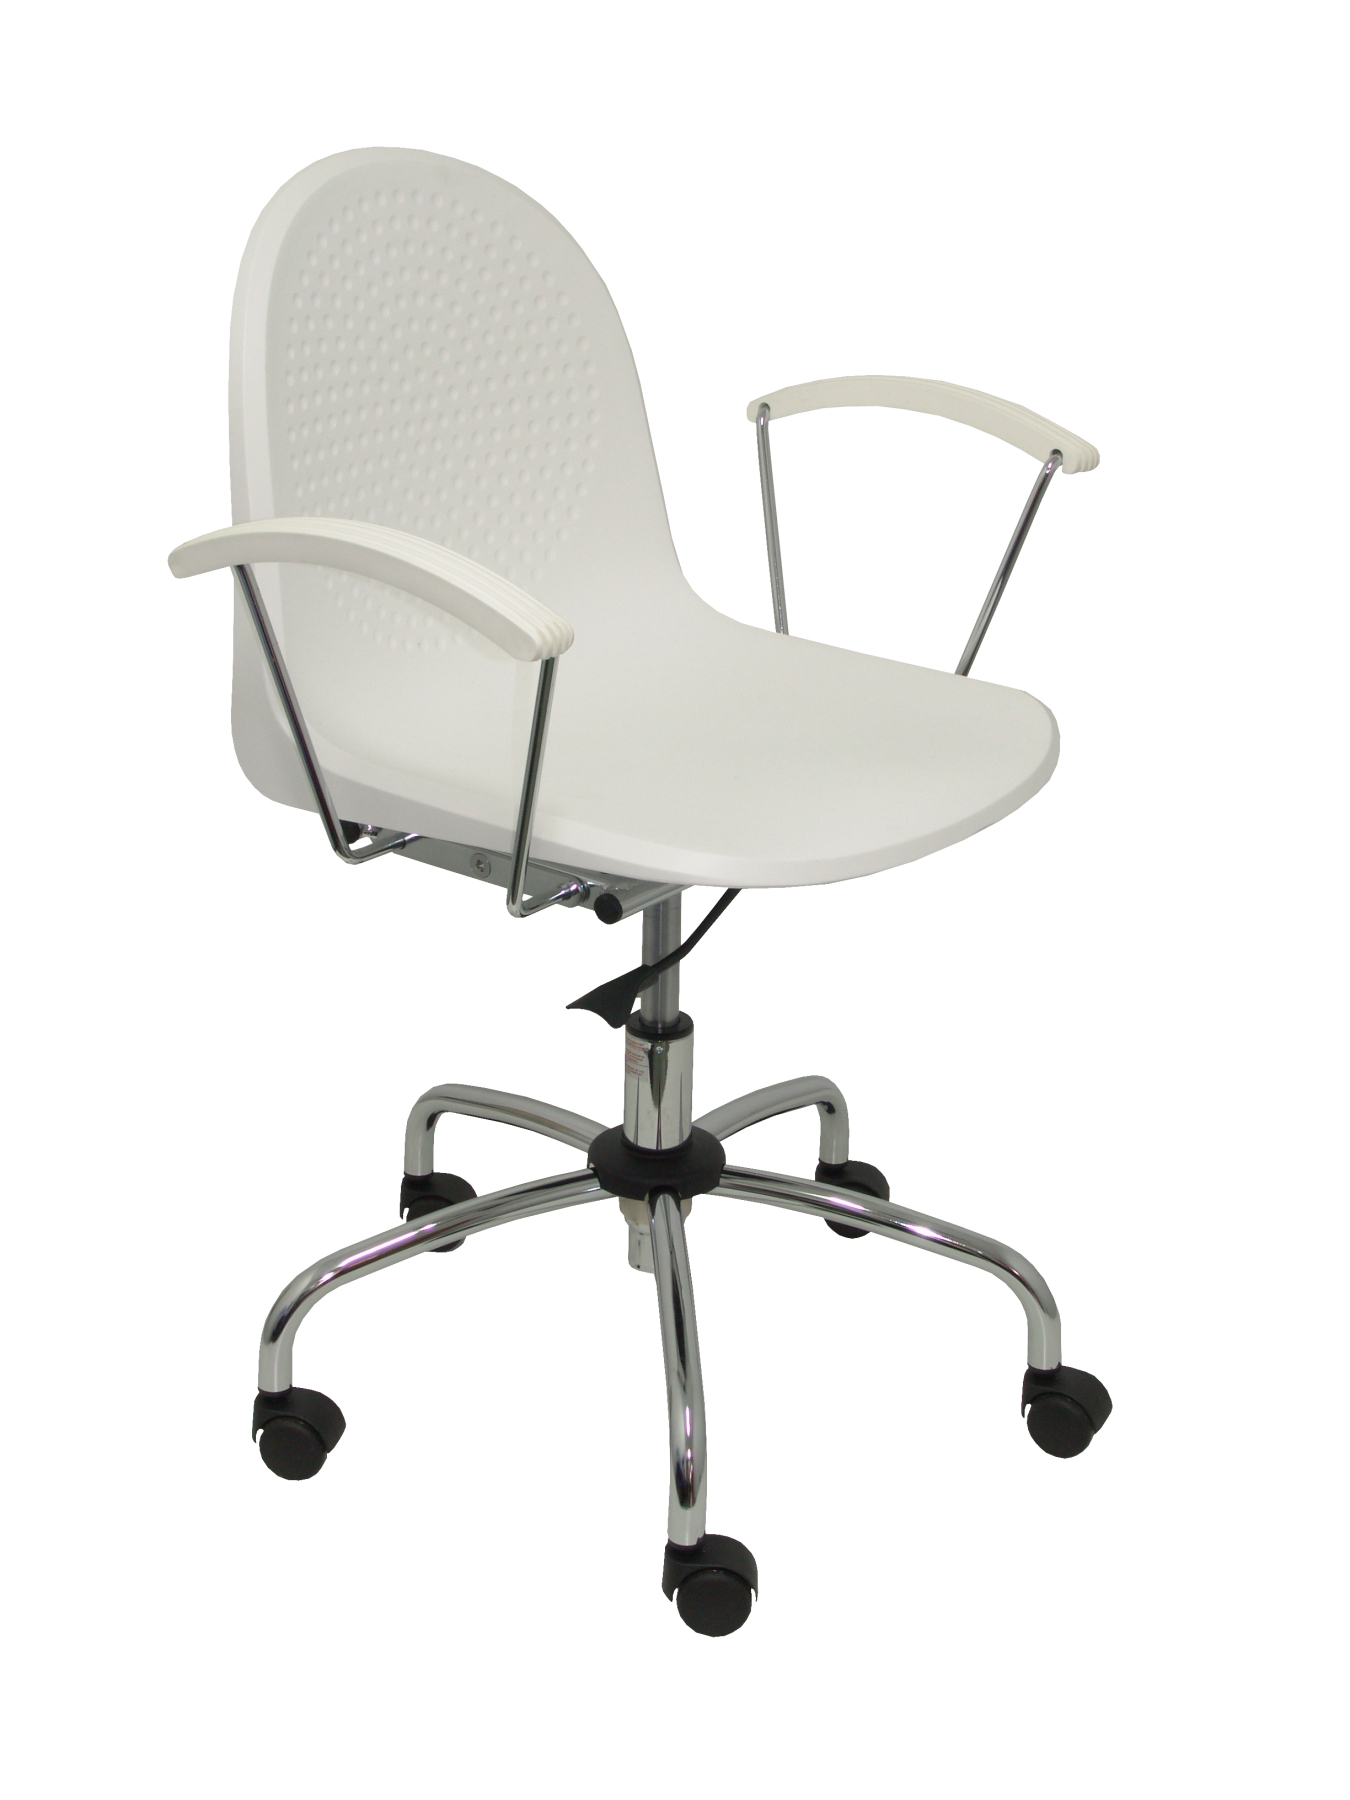 Chair's Office Desk Ergonomic With Arms Fixed, Dimmable In High Altitude And Rotating 360 ° Up Seat And Backstop Plastic